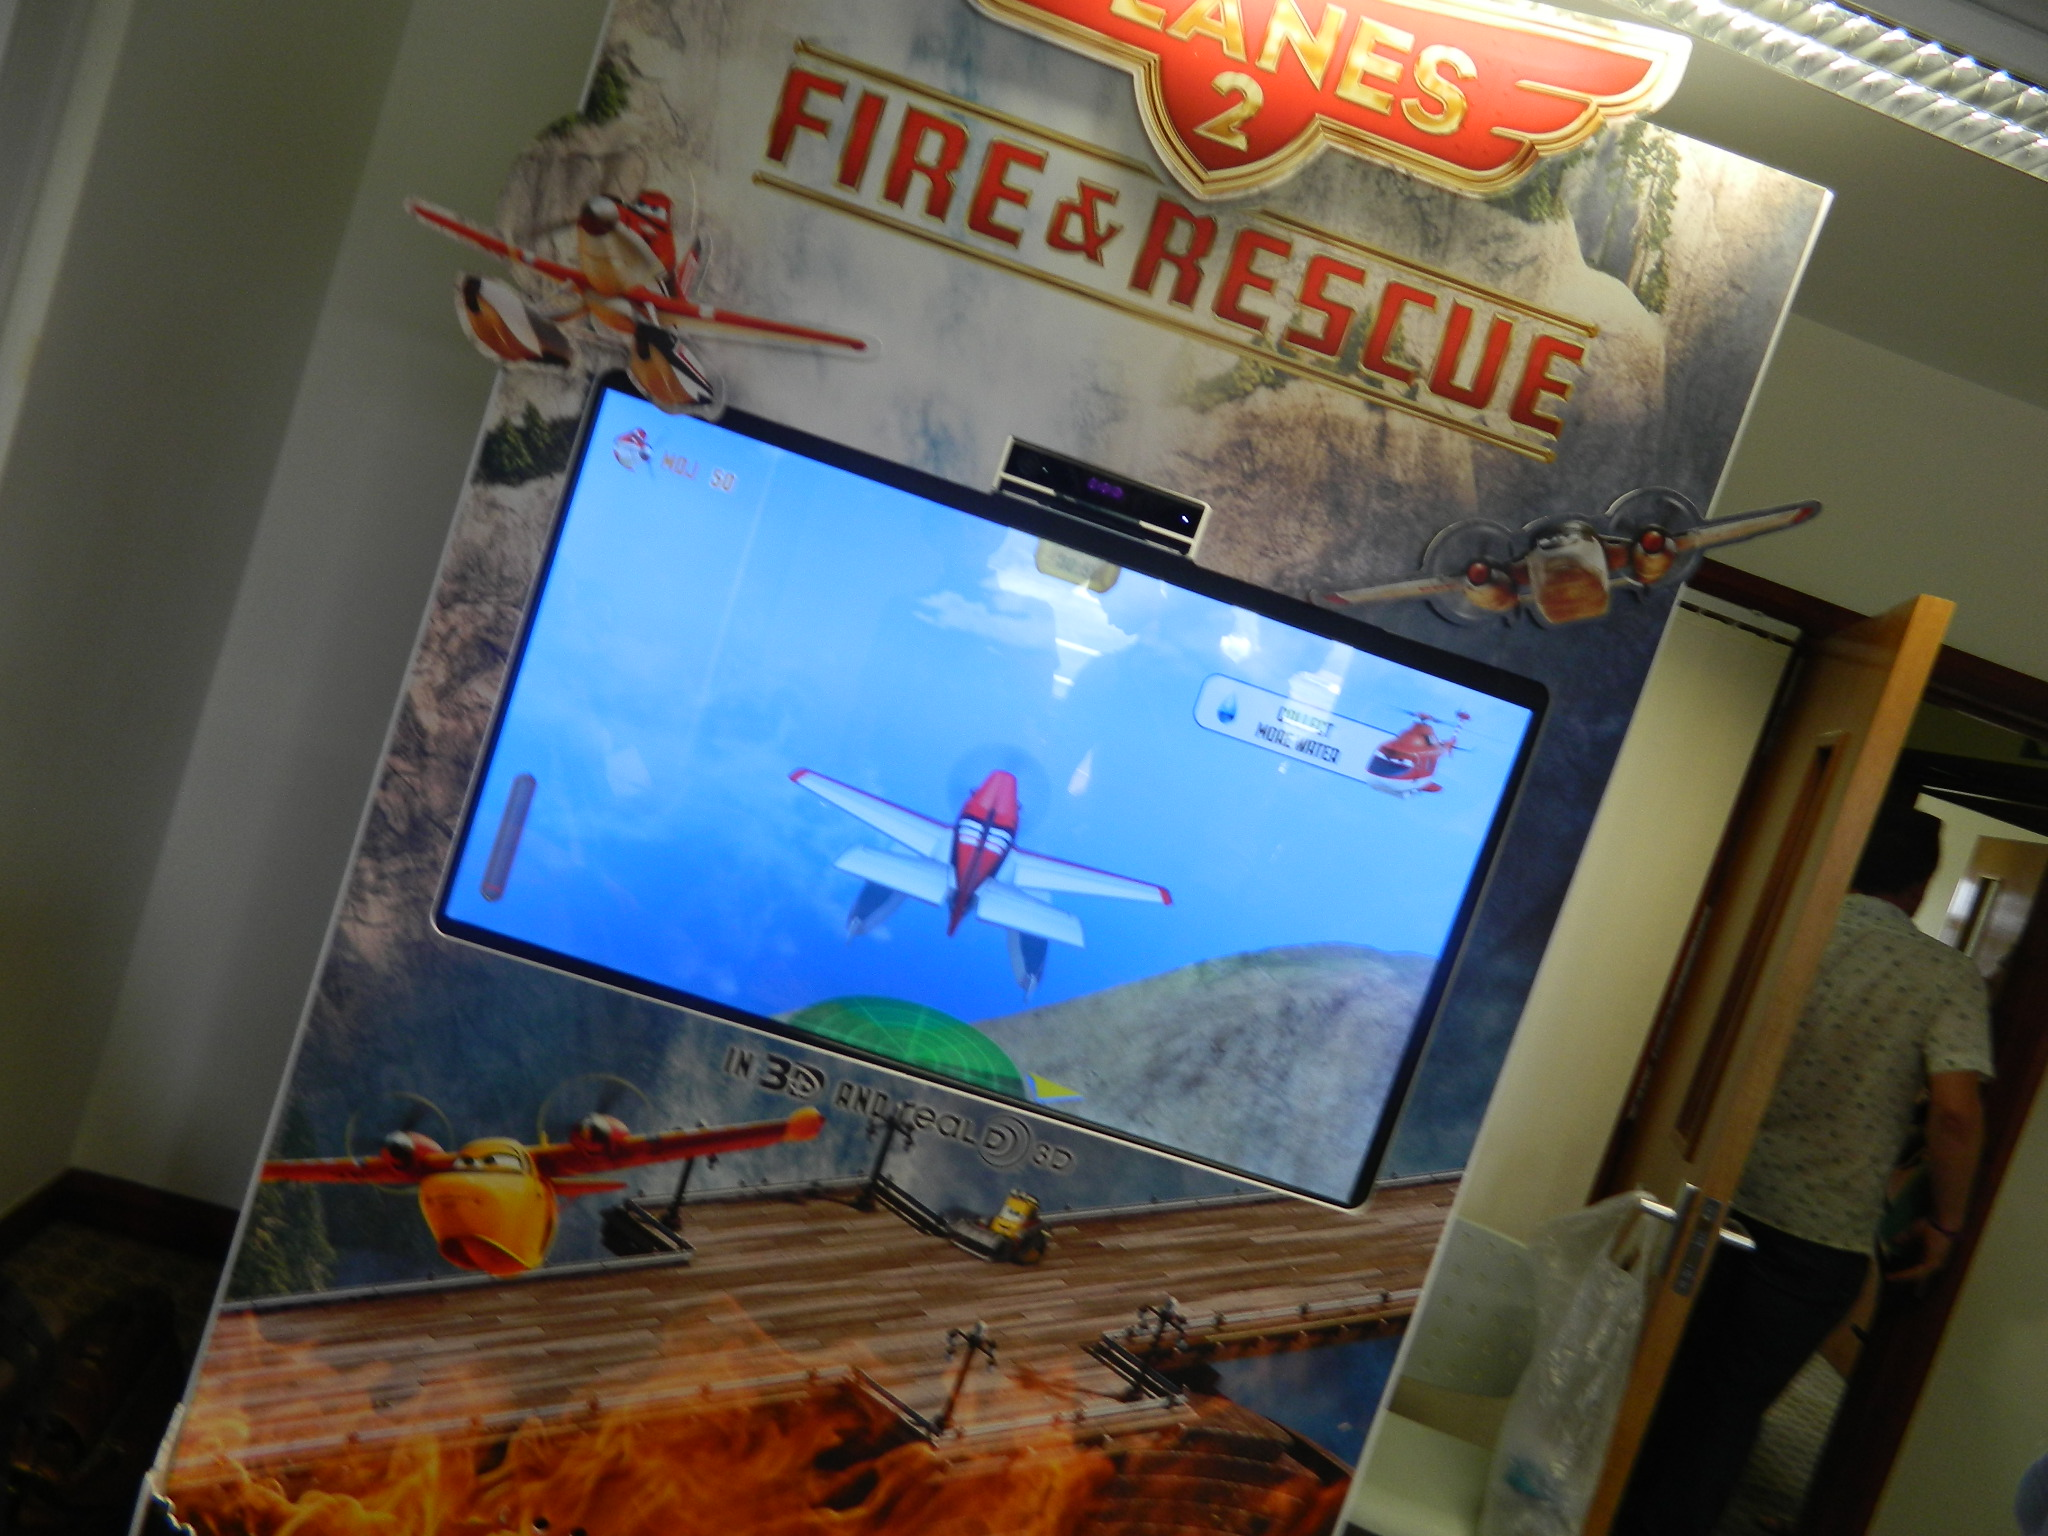 police helicopter games with Planes 2 Fire Rescue Dad Be Es A Fire Rescue Hero on Tag Gta 5 Ps3 Cheats besides Lego Review further 4548016 likewise Planes 2 Fire Rescue Dad Be es A Fire Rescue Hero together with B00GSPF9NE.